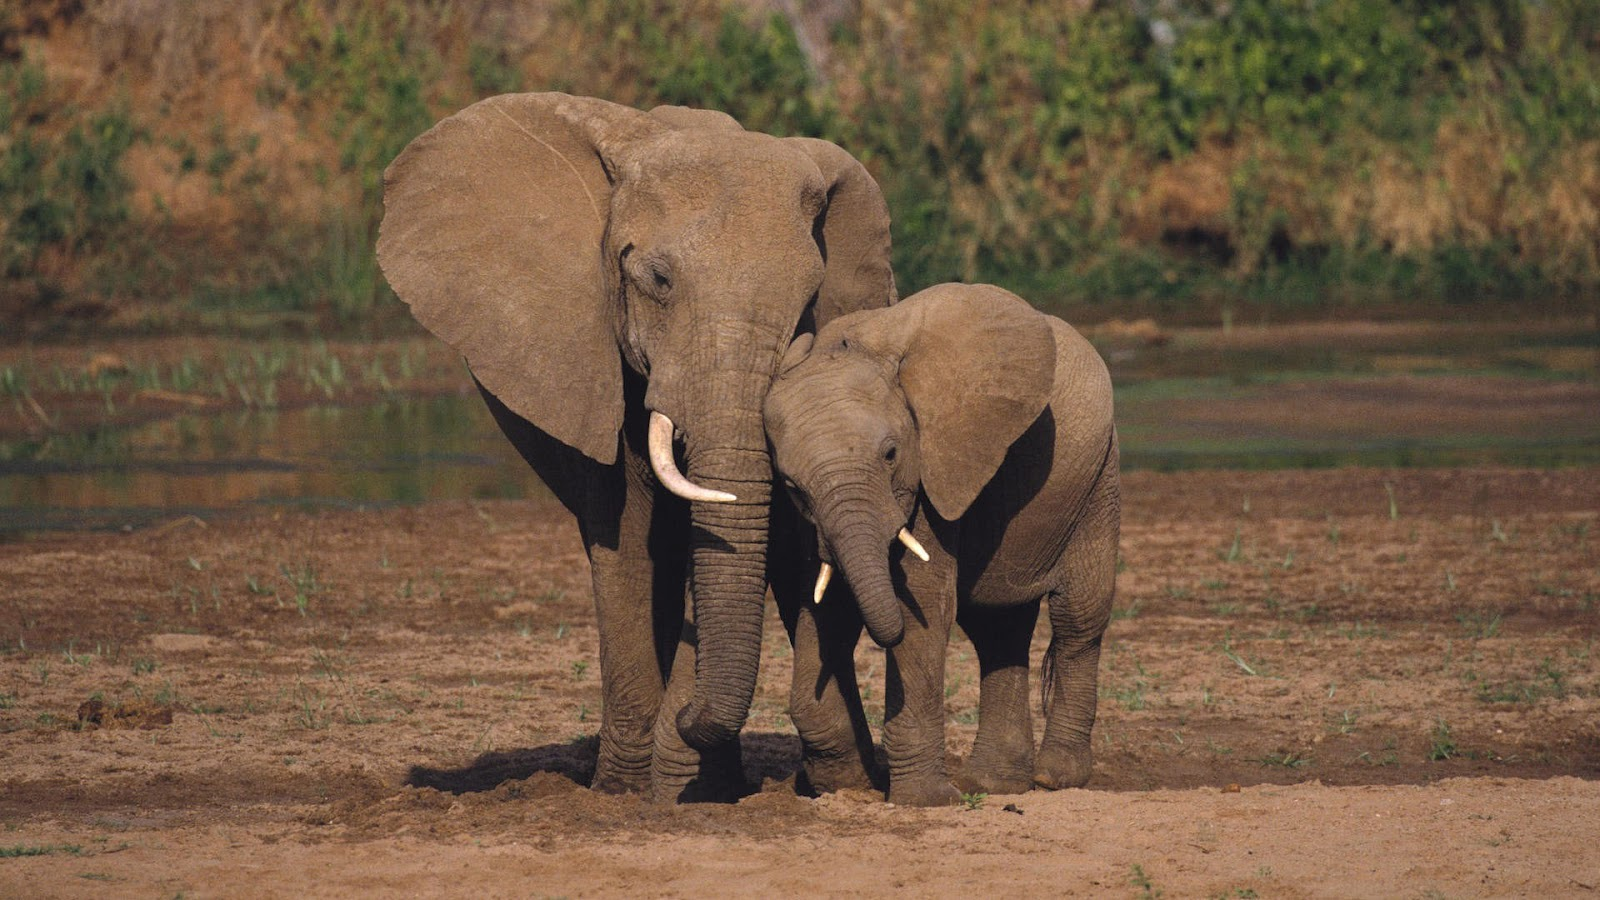 Beautiful Pictures Of Elephant In Hd: Most Beautiful Elephant Wallpaper